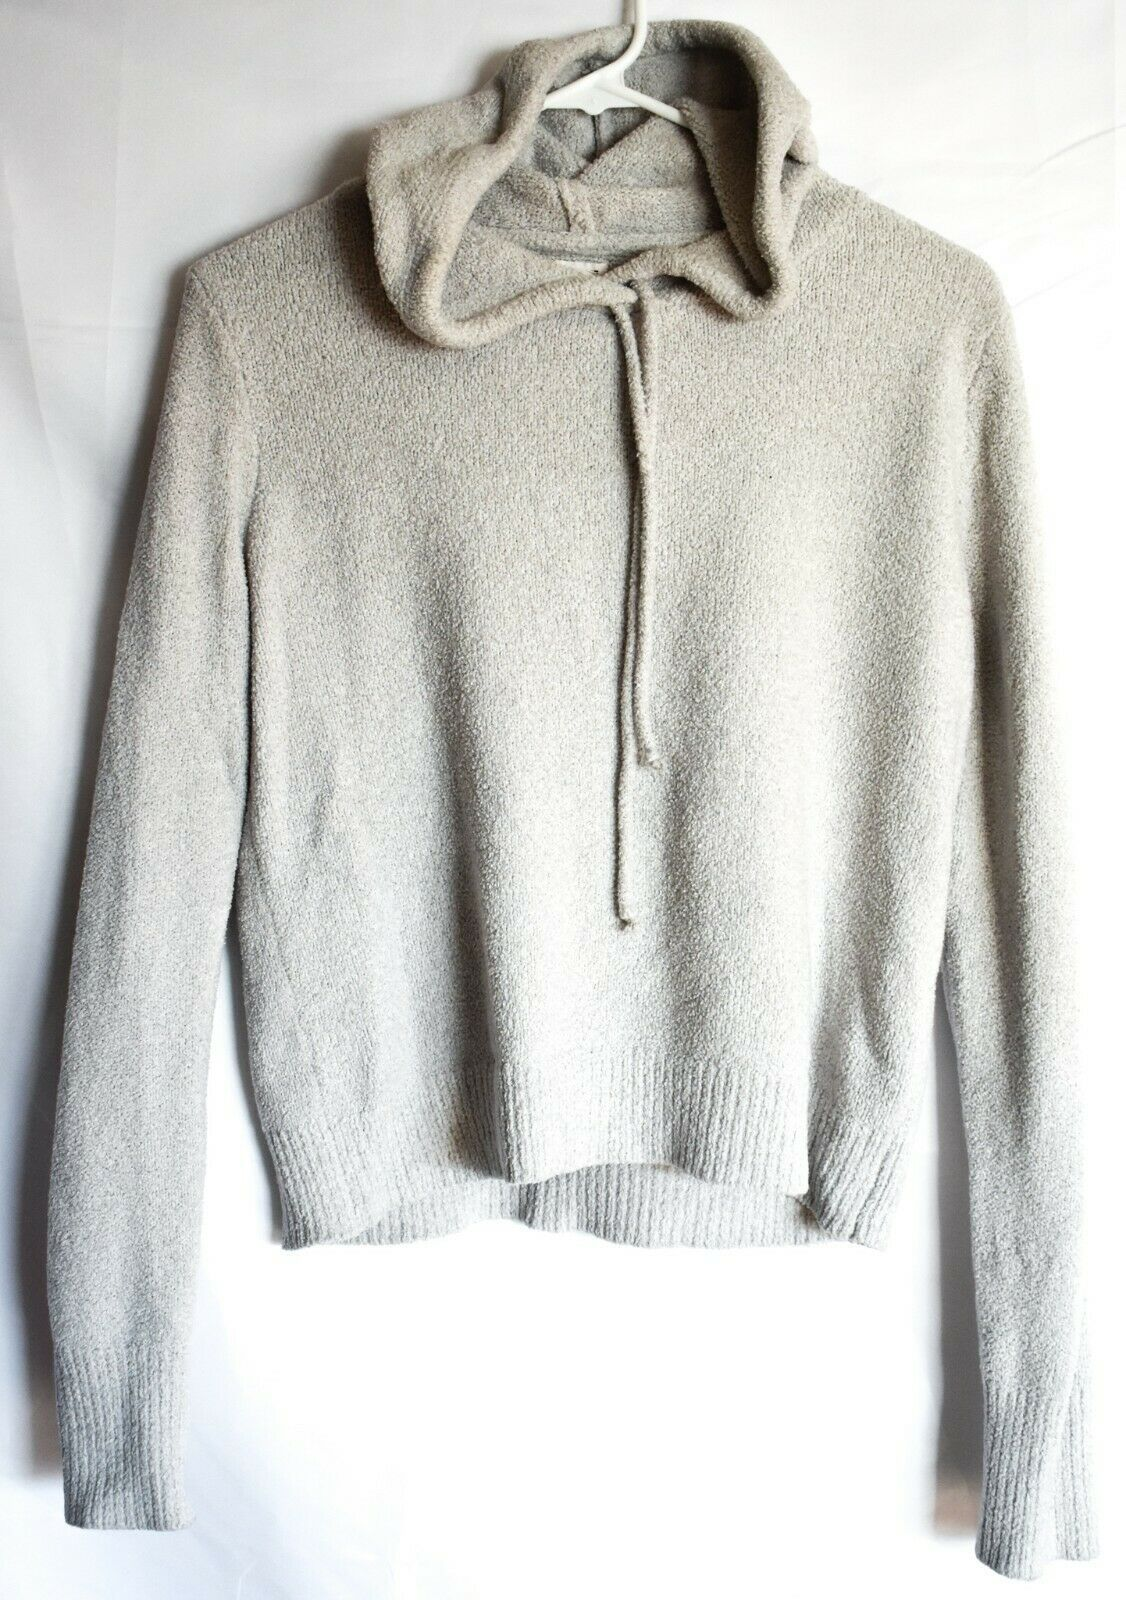 Garage Clothing Soft Fuzzy Gray Grey Hooded Knit Sweater Pullover Hoodie Size M